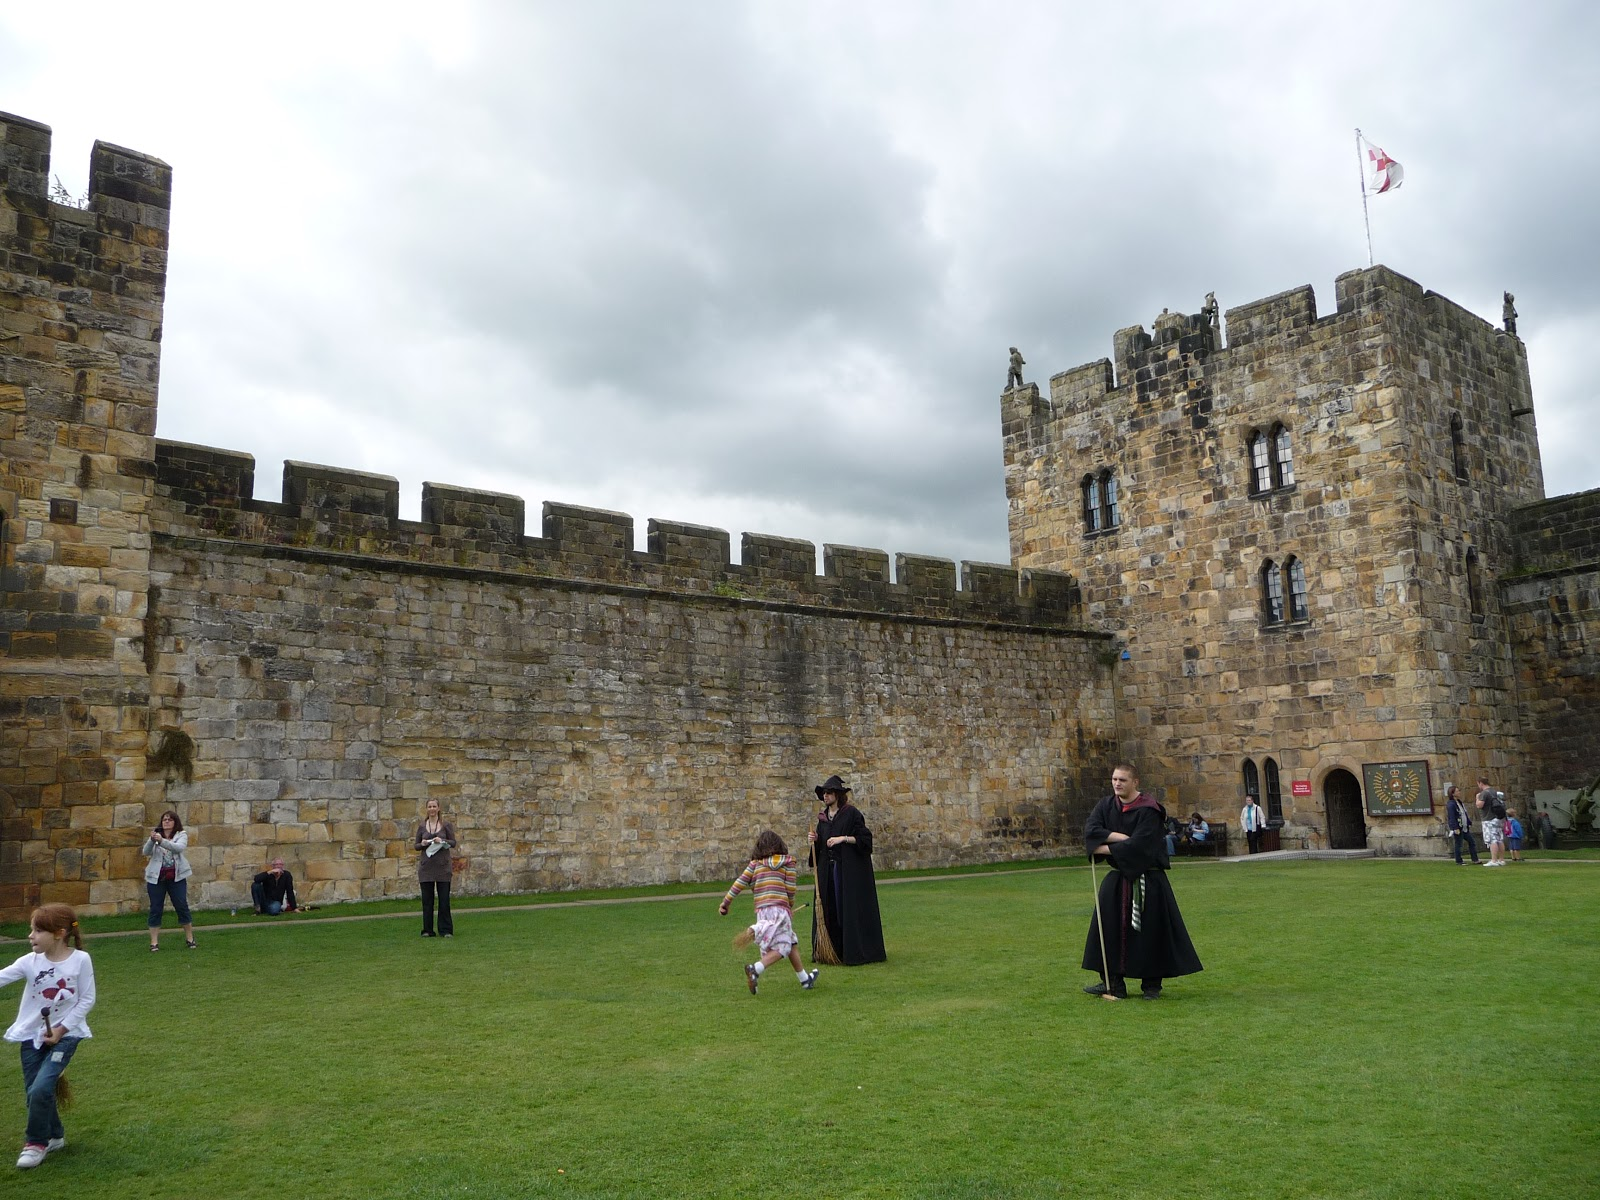 Harry Potter and the Philosopher's Stone (film) - Wikipedia Harry potter alnwick castle pictures